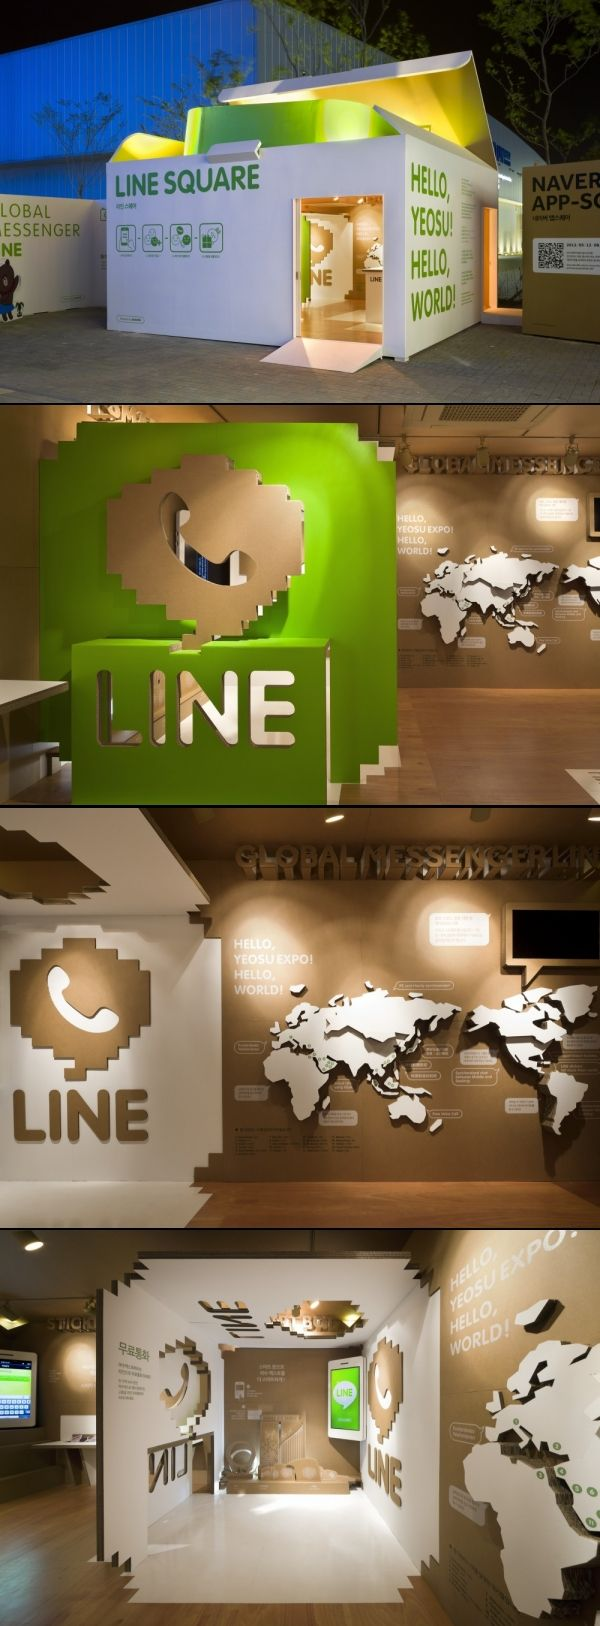 Naver Line Square Exhibition Booth Design Exhibition Stand Design Environmental Design